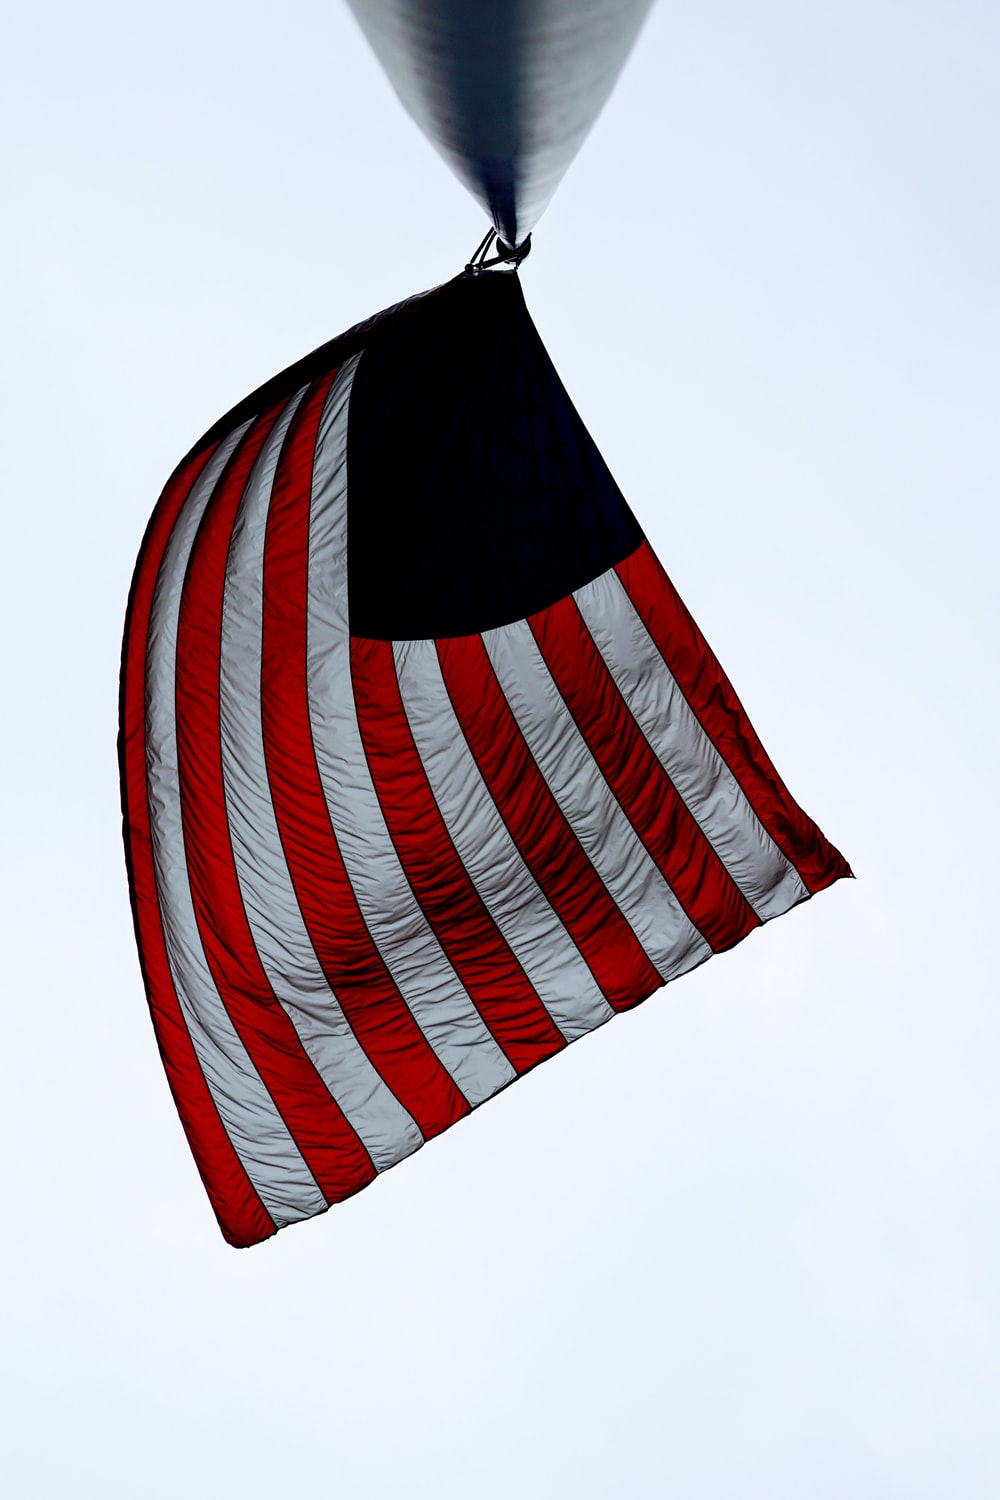 United State of America Flag on black metal post during daytime